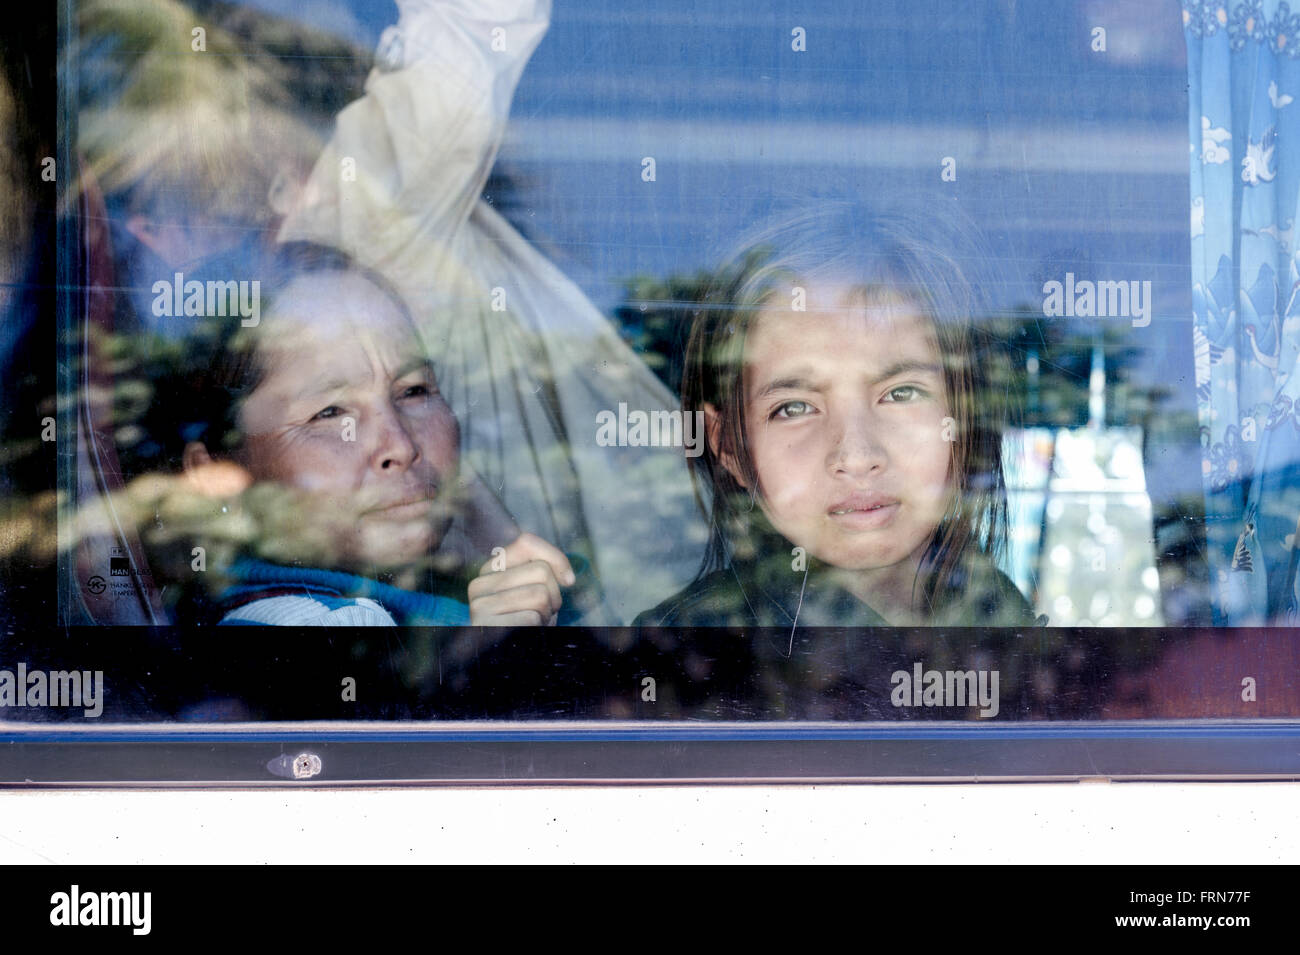 Asia. South-East Asia. Laos. Portrait of a little girl in a public bus. - Stock Image